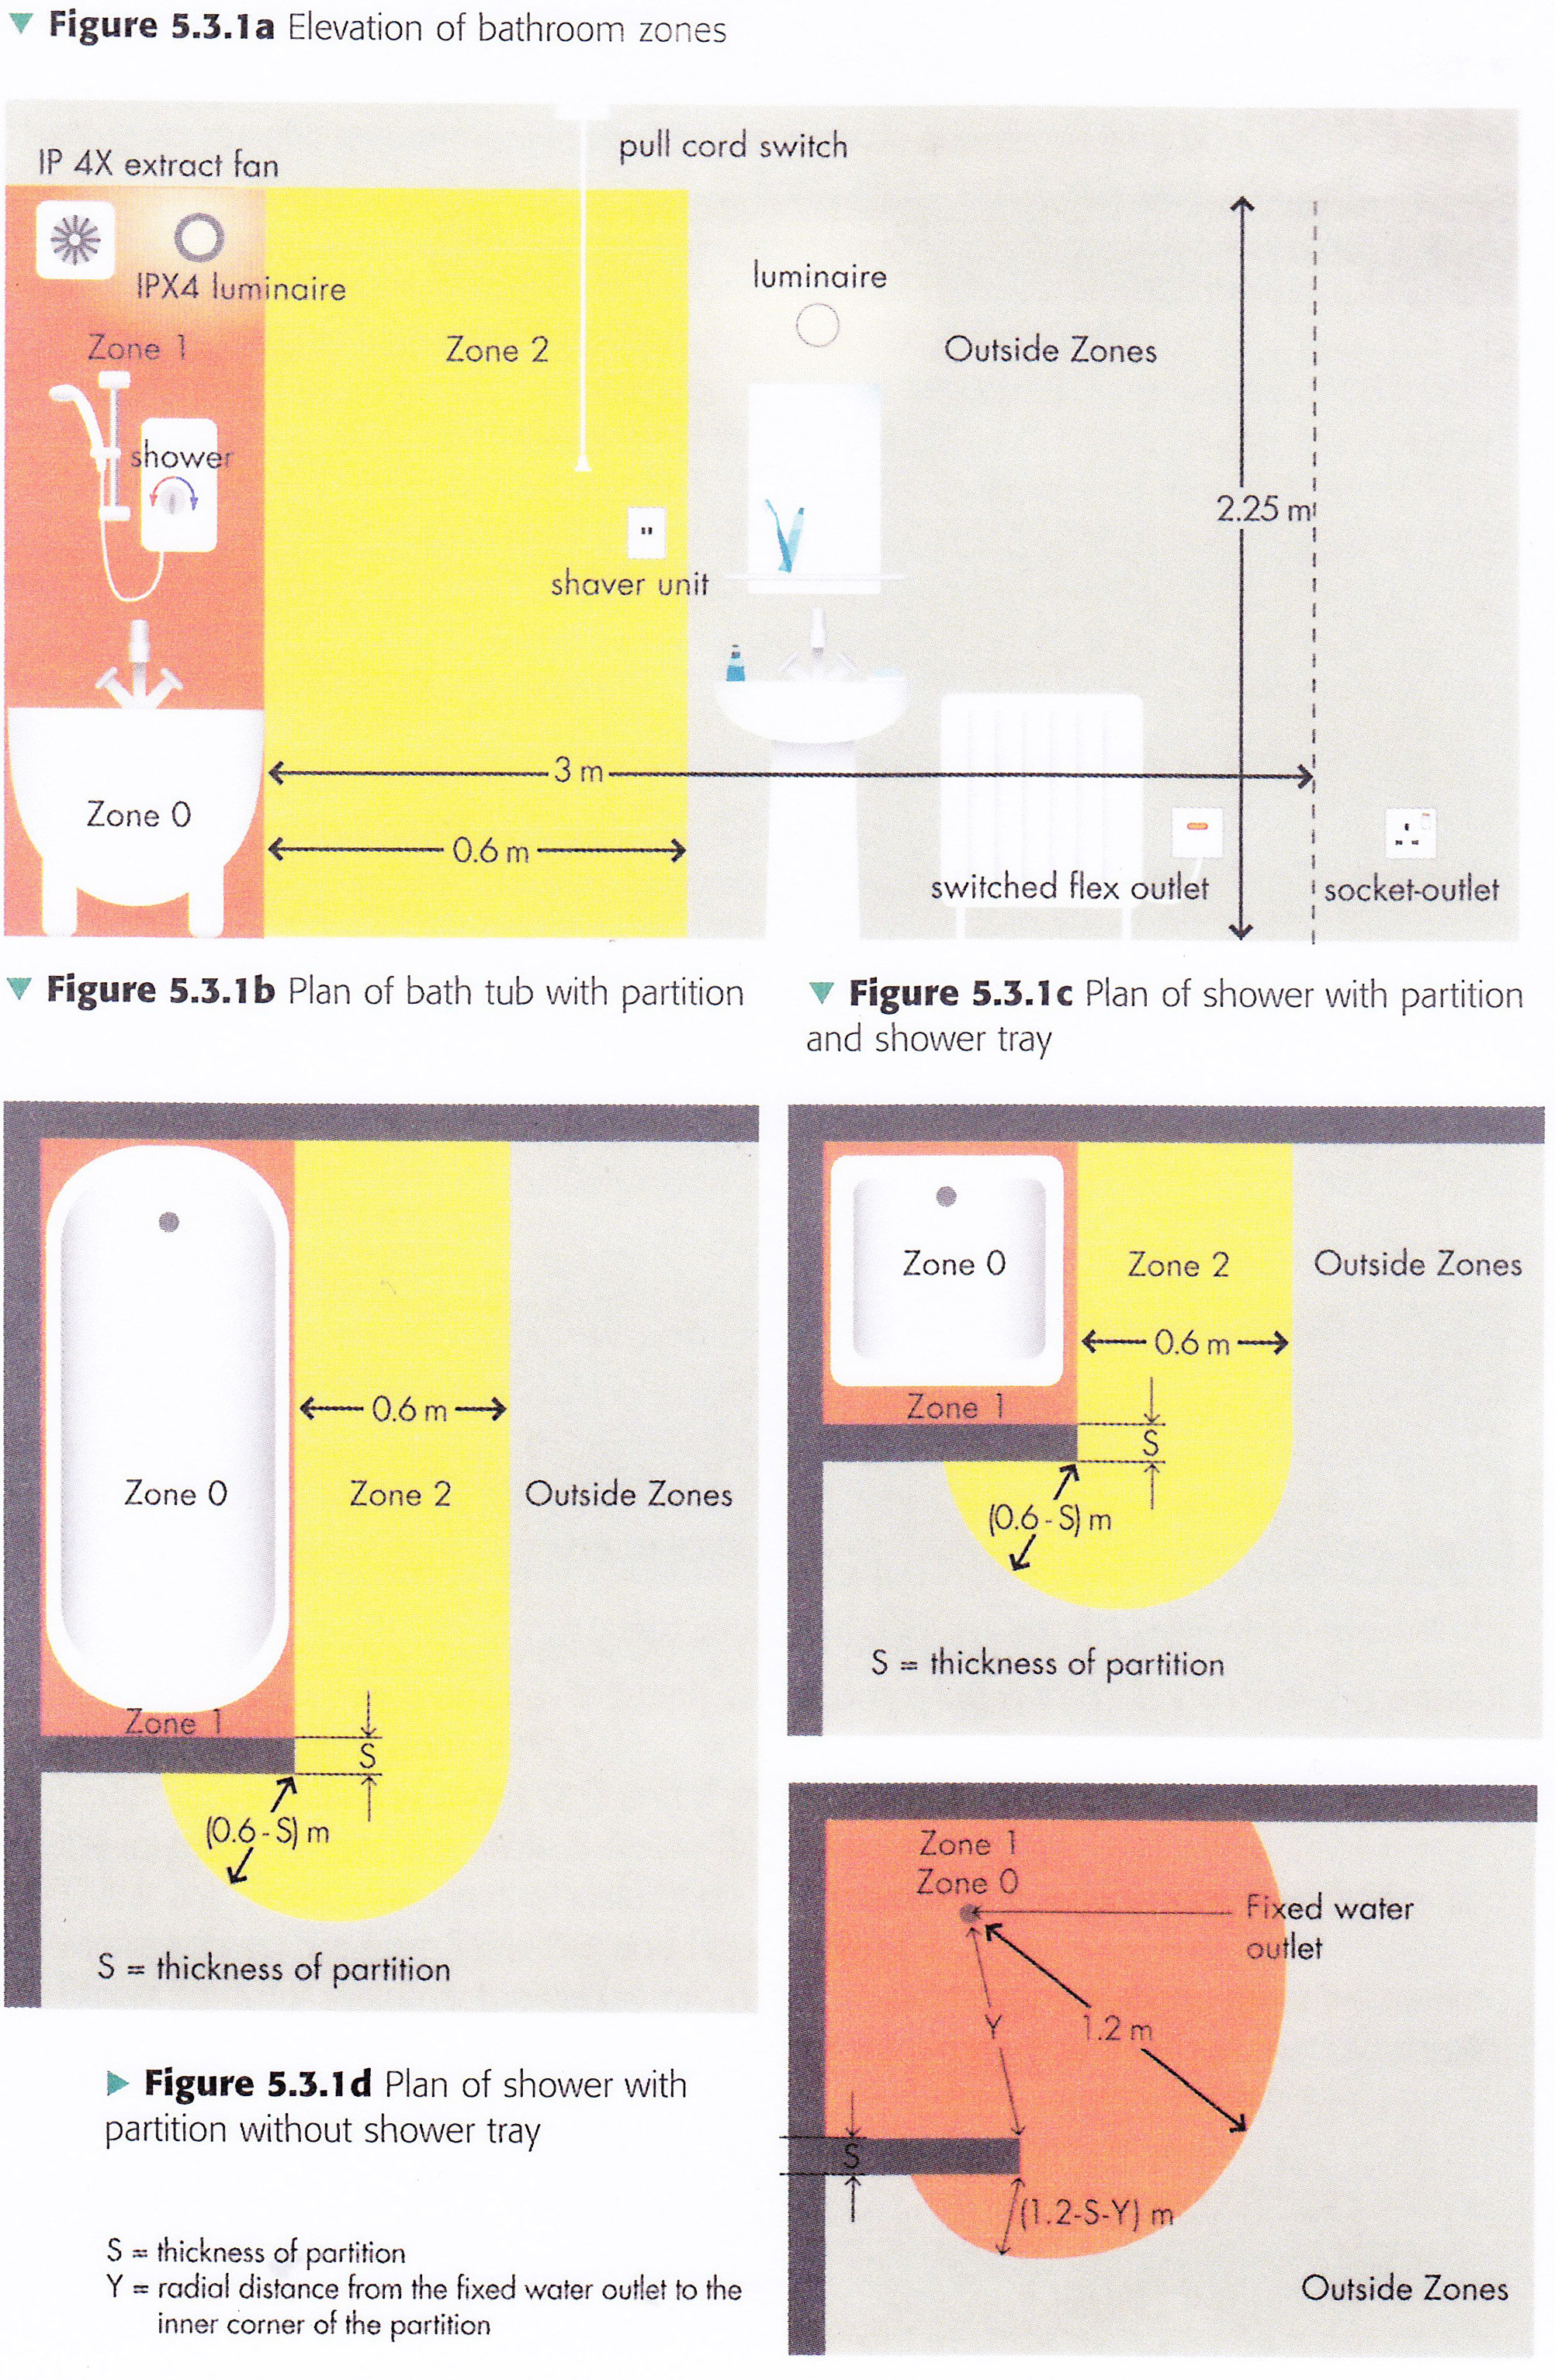 Electrical Wiring: Bathroom Electrical Wiring Zones on